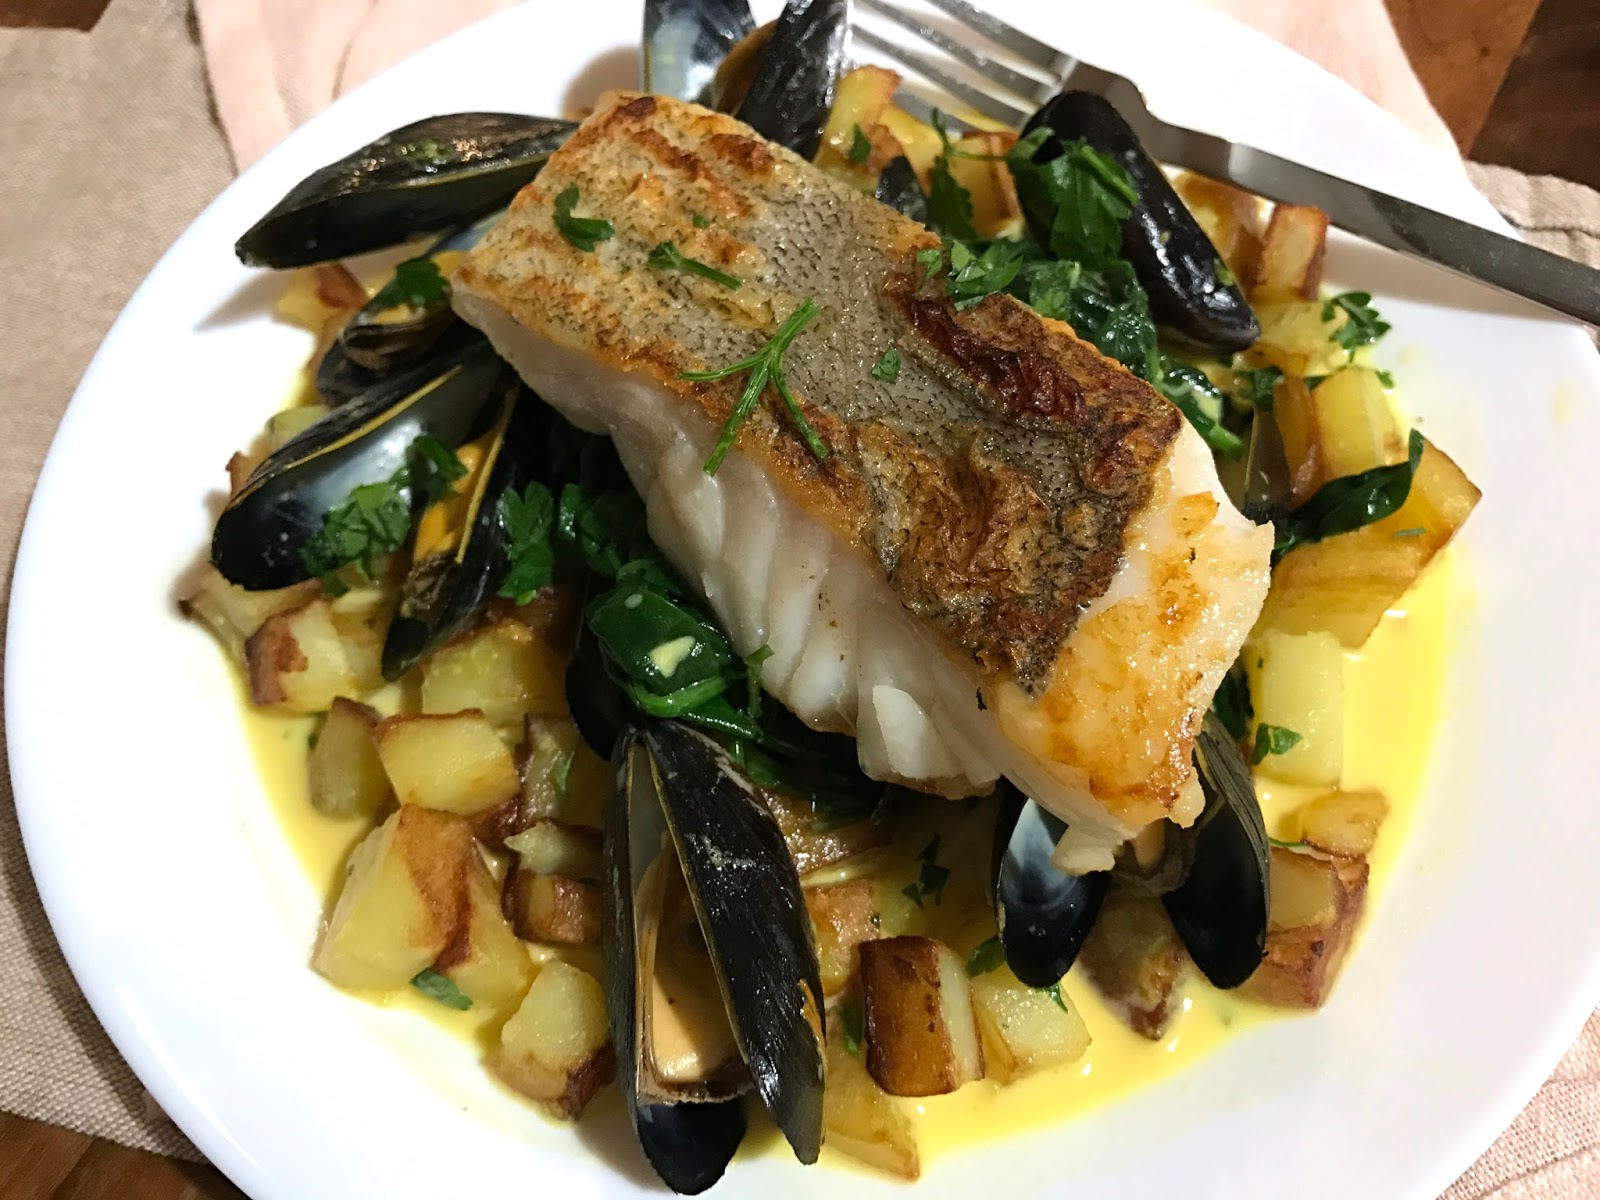 Fish for thought seafood recipe box lucy loves to eat the seafood potatoes and vegetables are superior quality to anything you can buy in the supermarkets the fish is so fresh and really does taste like forumfinder Choice Image